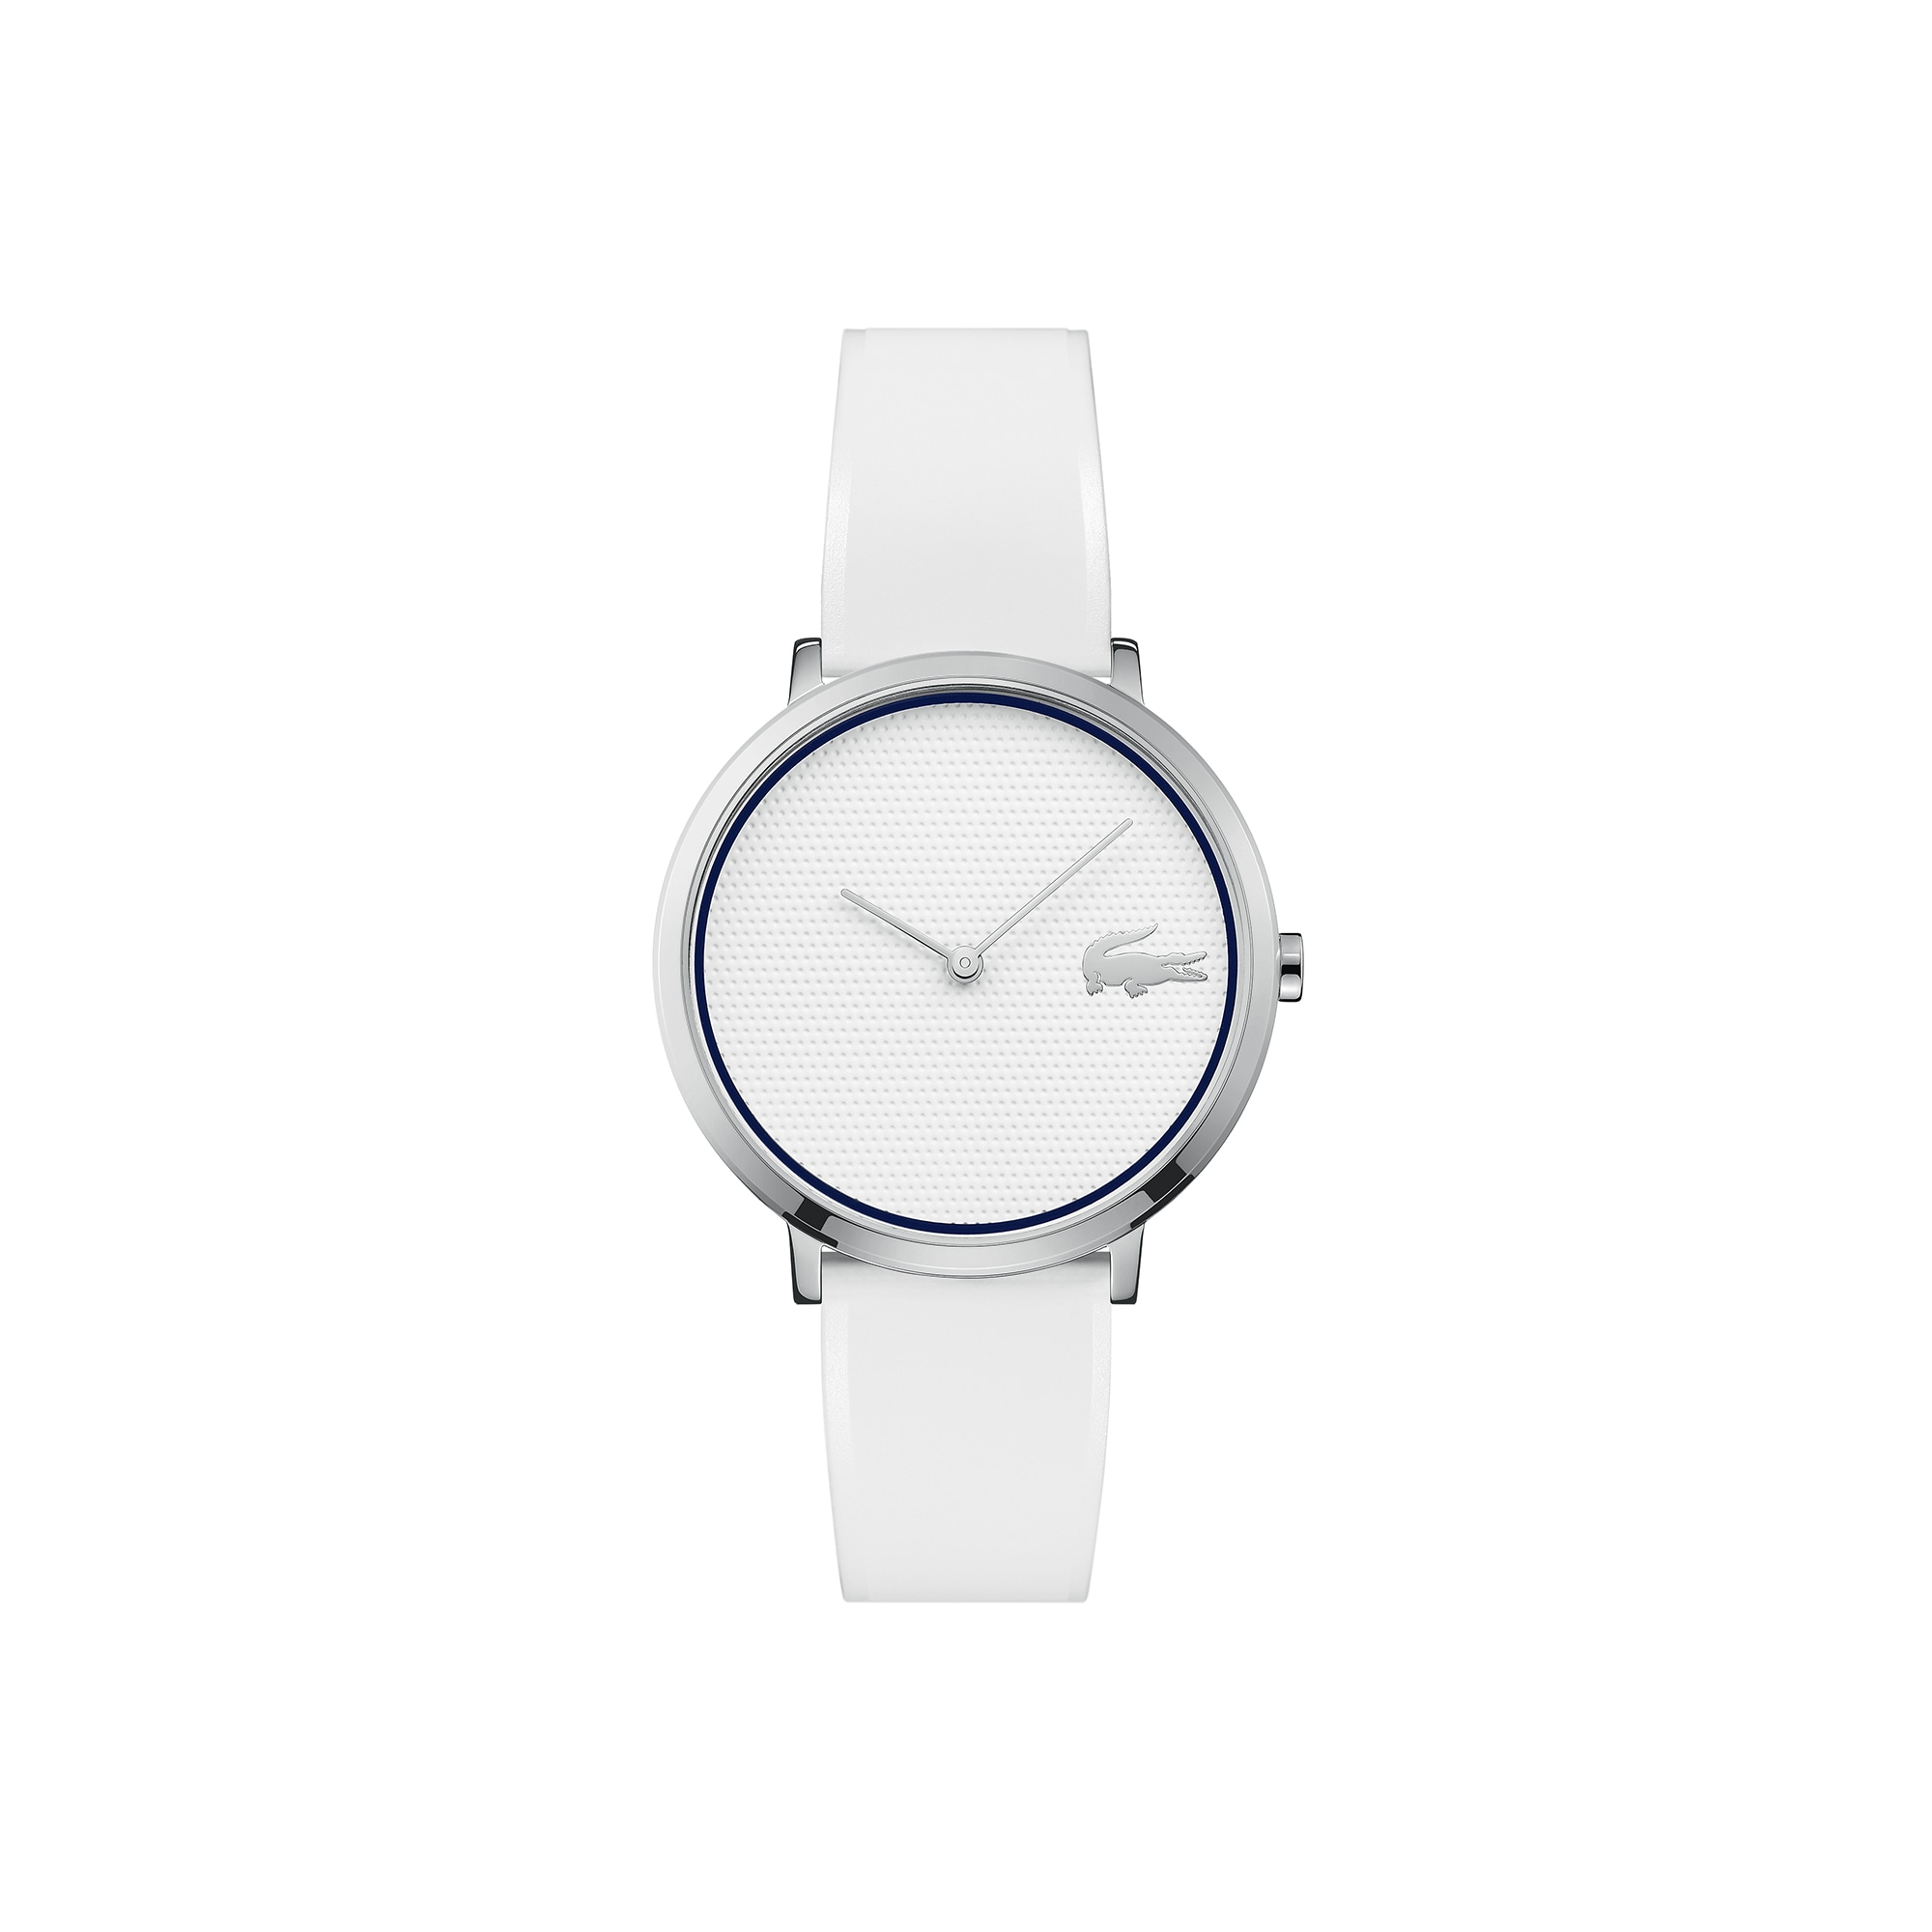 Women's Moon Ultra Slim Watch Golf Capsule with White Silicone Strap